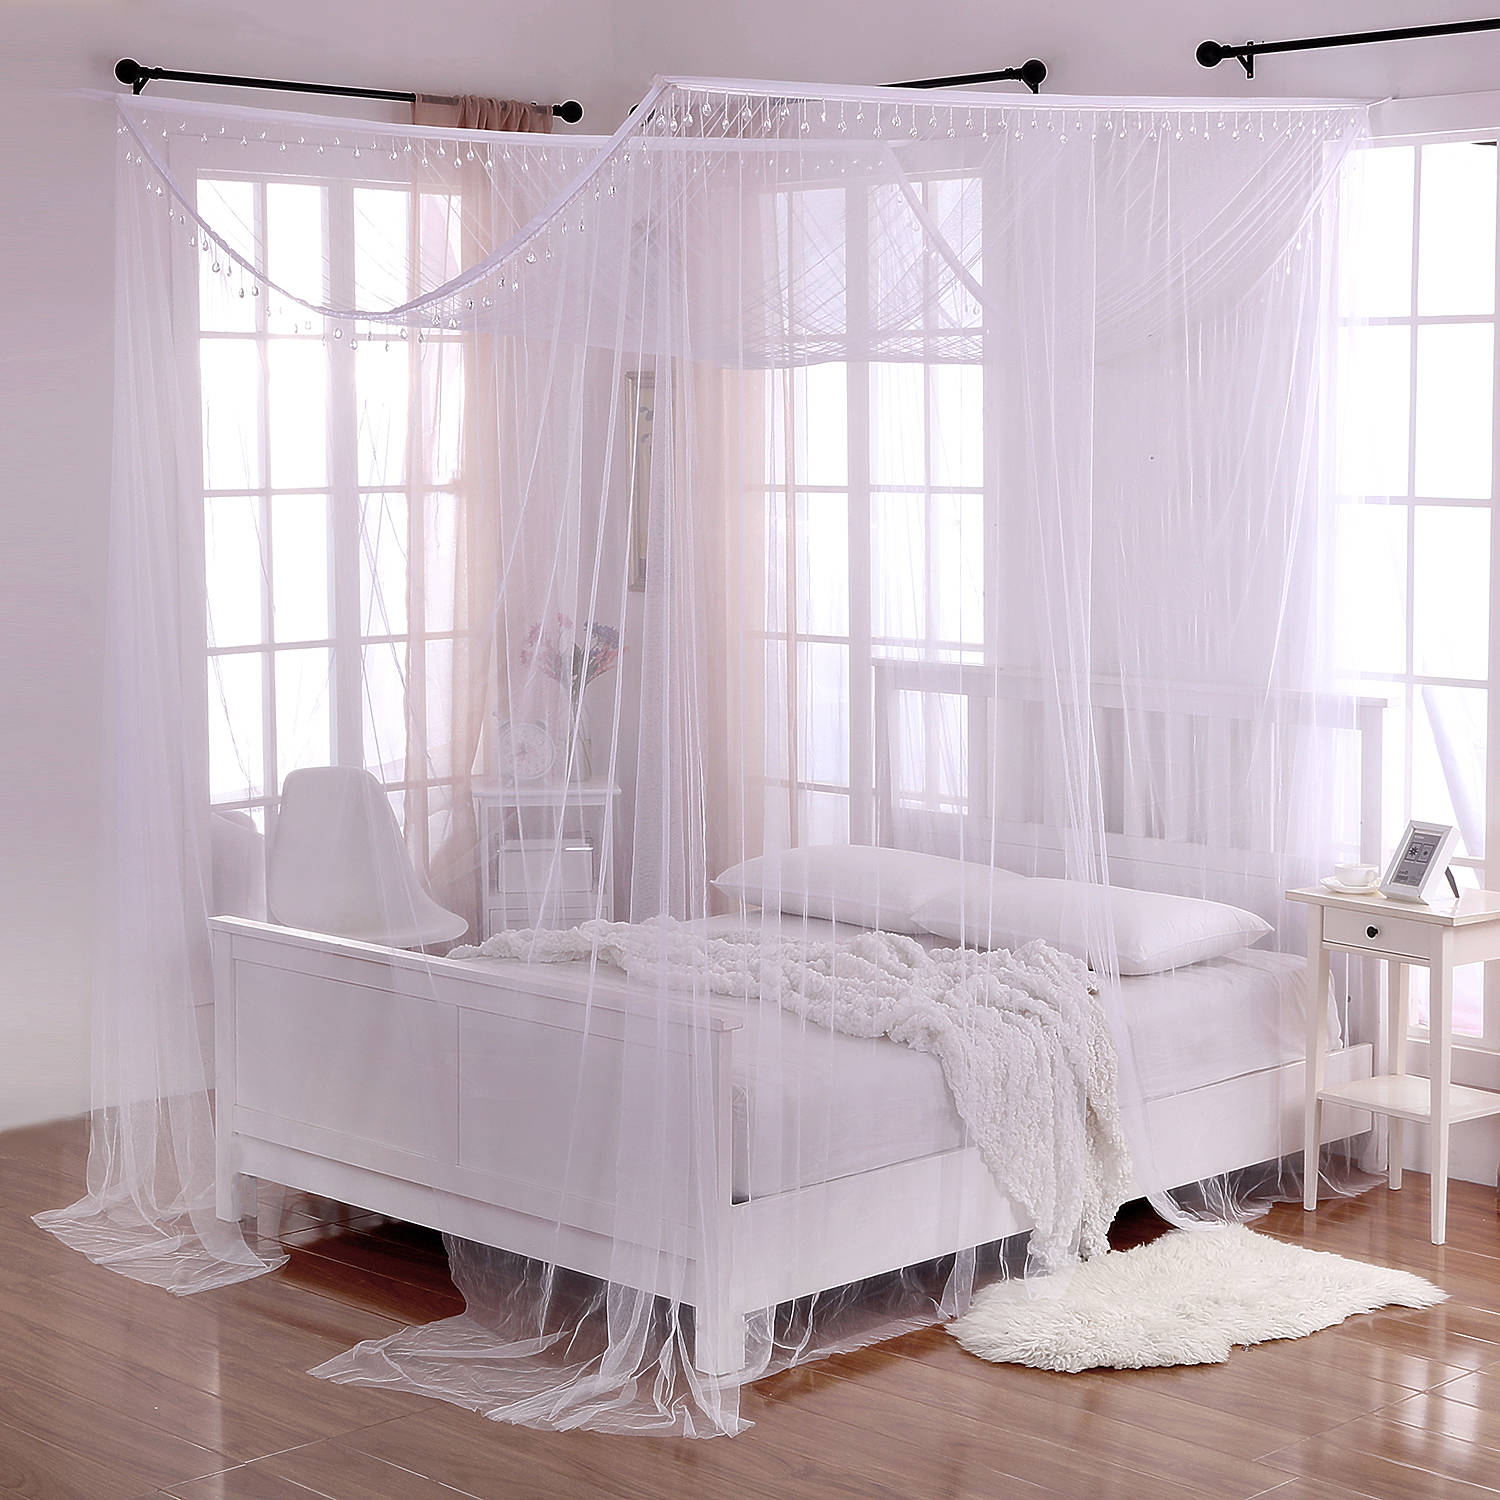 Palace Crystal 4-Post Bed Sheer Mosquito Net Panel Canopy - Walmart.com & Palace Crystal 4-Post Bed Sheer Mosquito Net Panel Canopy ...